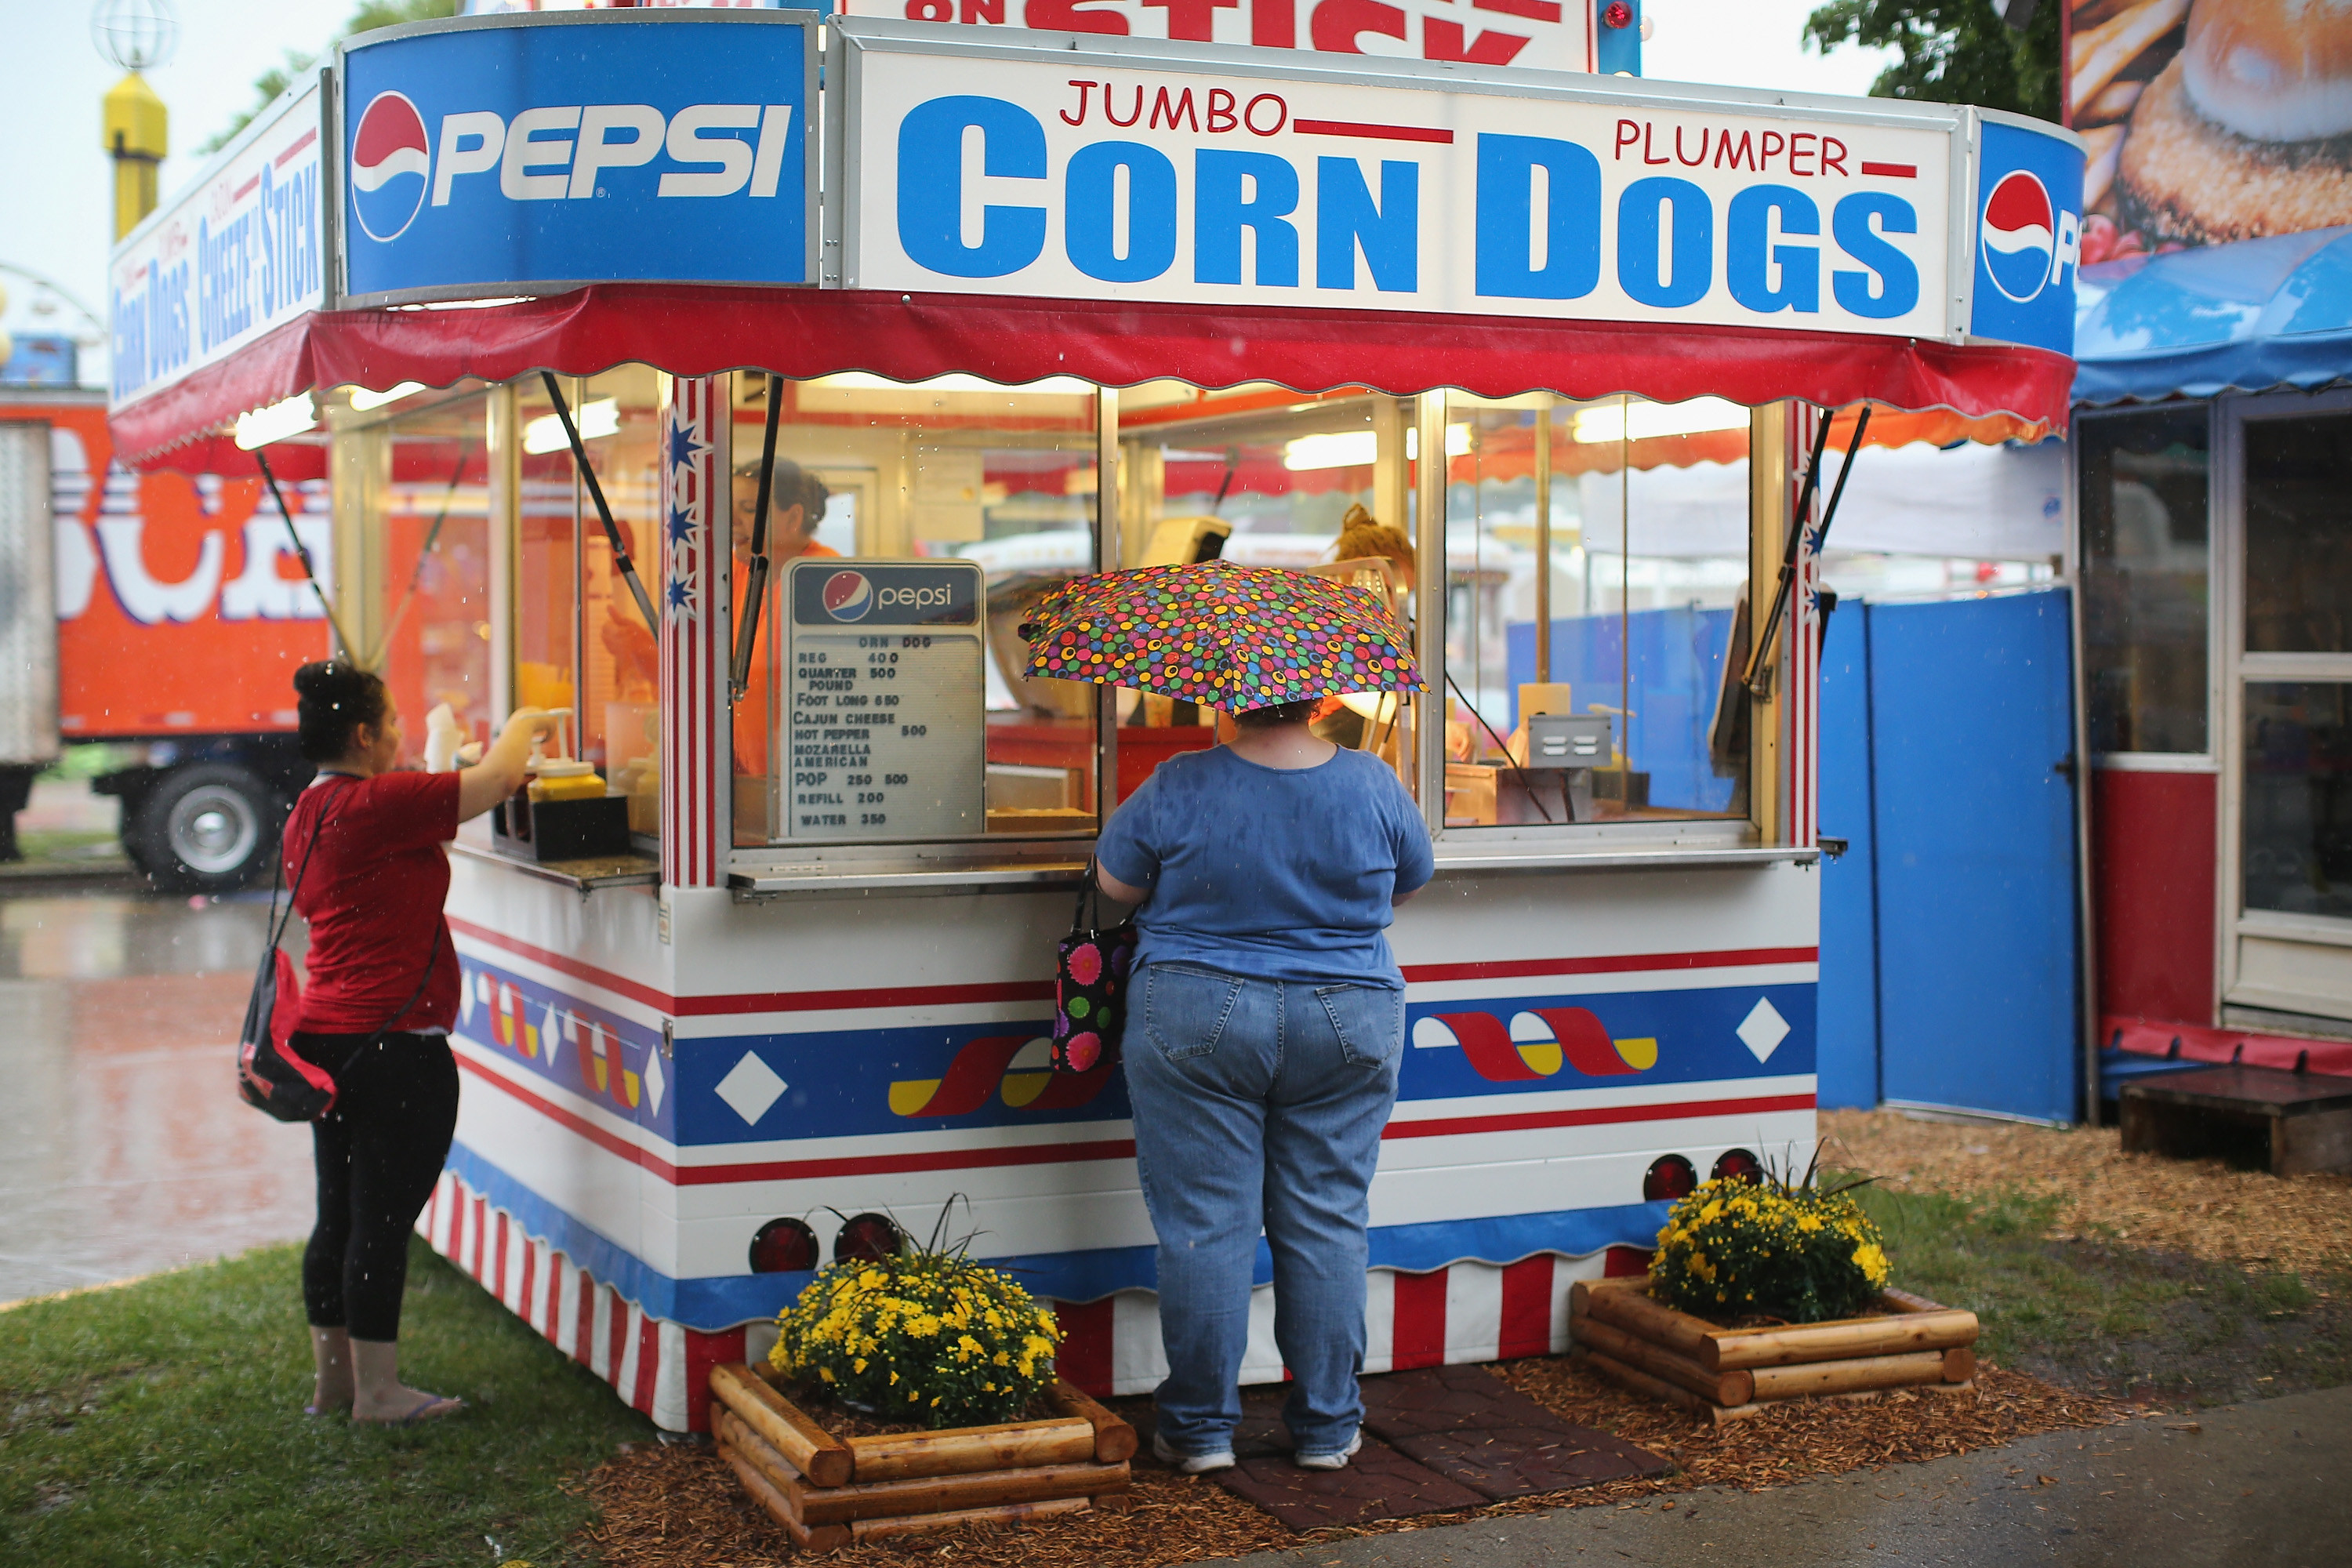 Fair attendees order food at a corndog stand on a rainy day at the Iowa State Fair